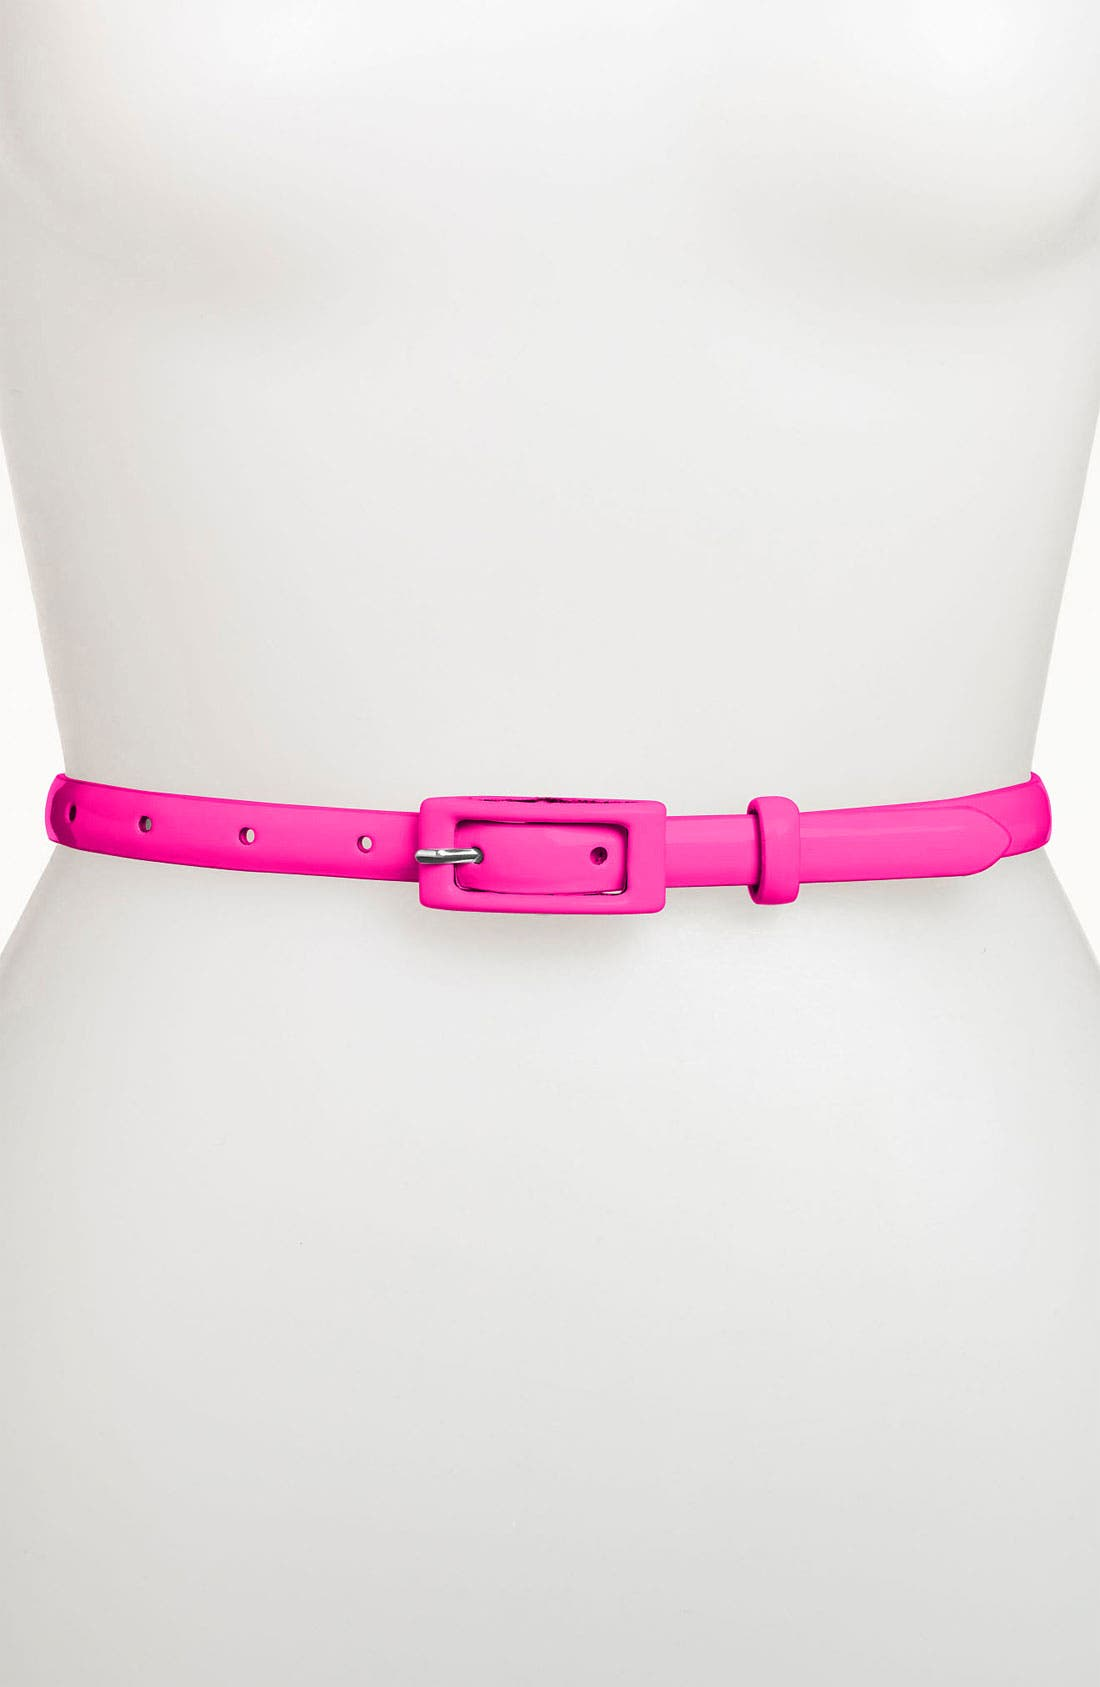 Main Image - Another Line 'Updated' Skinny Patent Belt